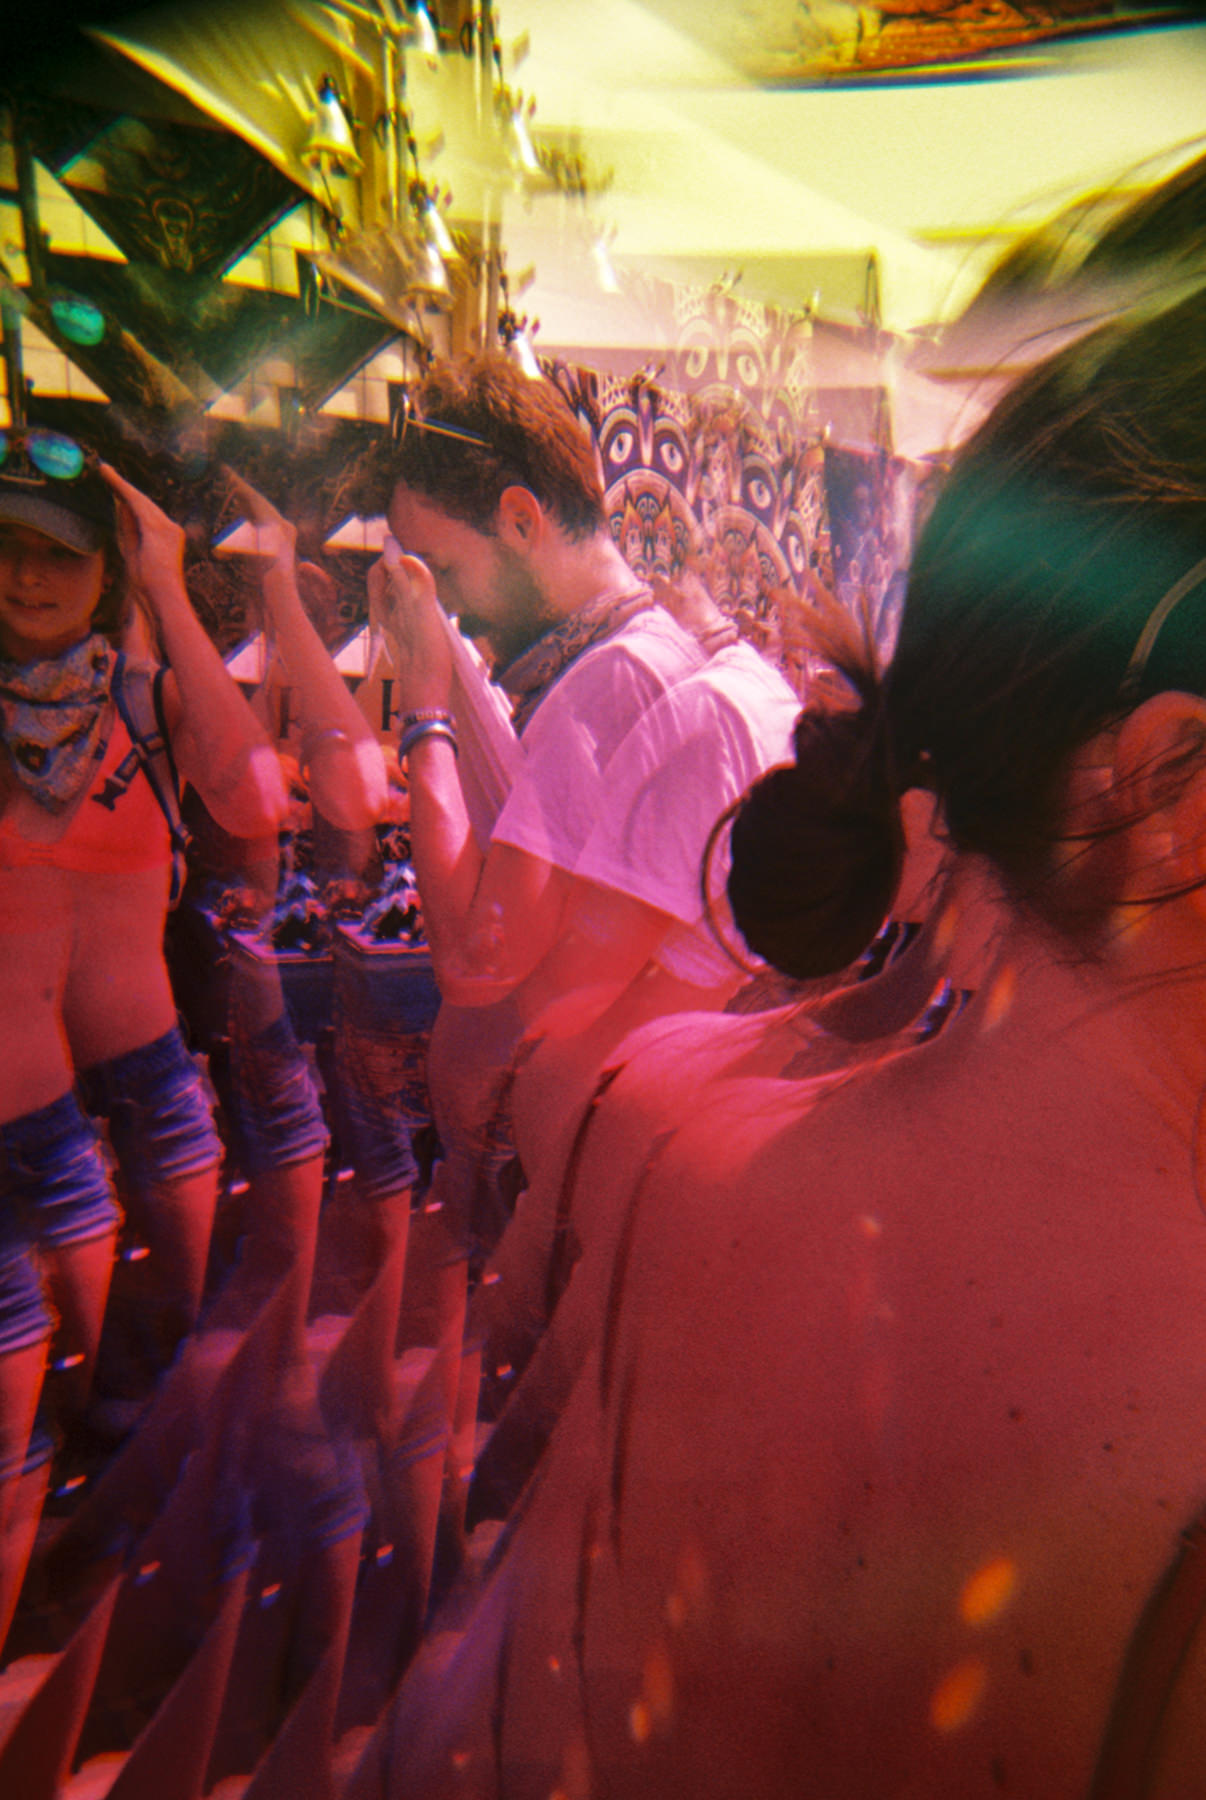 180728-kirby-gladstein-photograpy-Float-Fest-Fuji-disposable-034.jpg